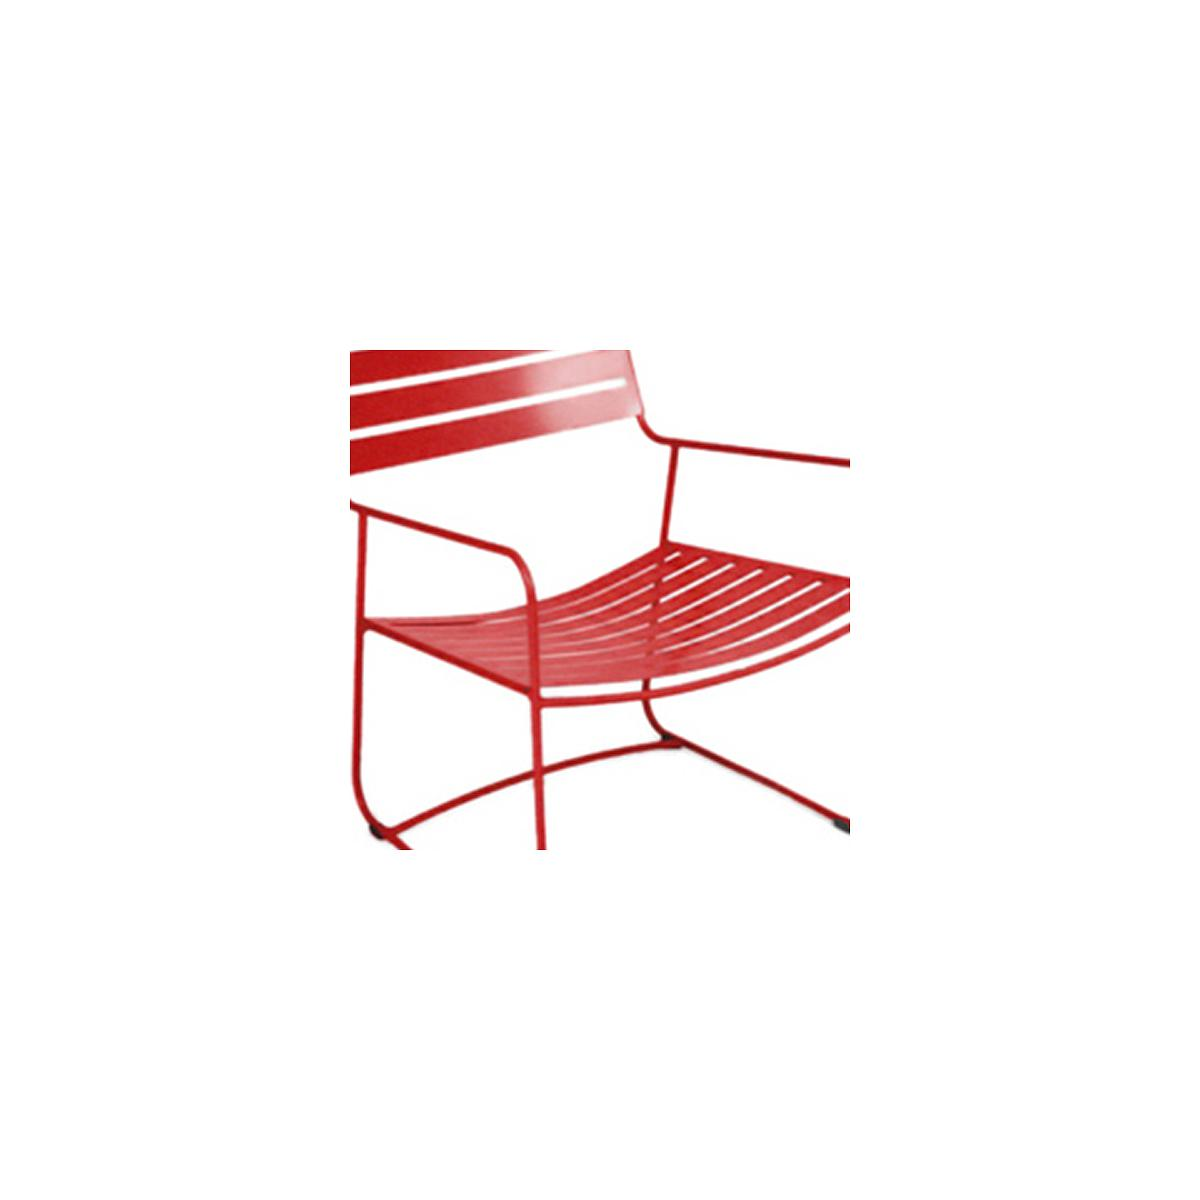 CoquelicotAbitare Fermob Living lu Fauteuil Rouge Bas Surprising By ulJ51TFKc3